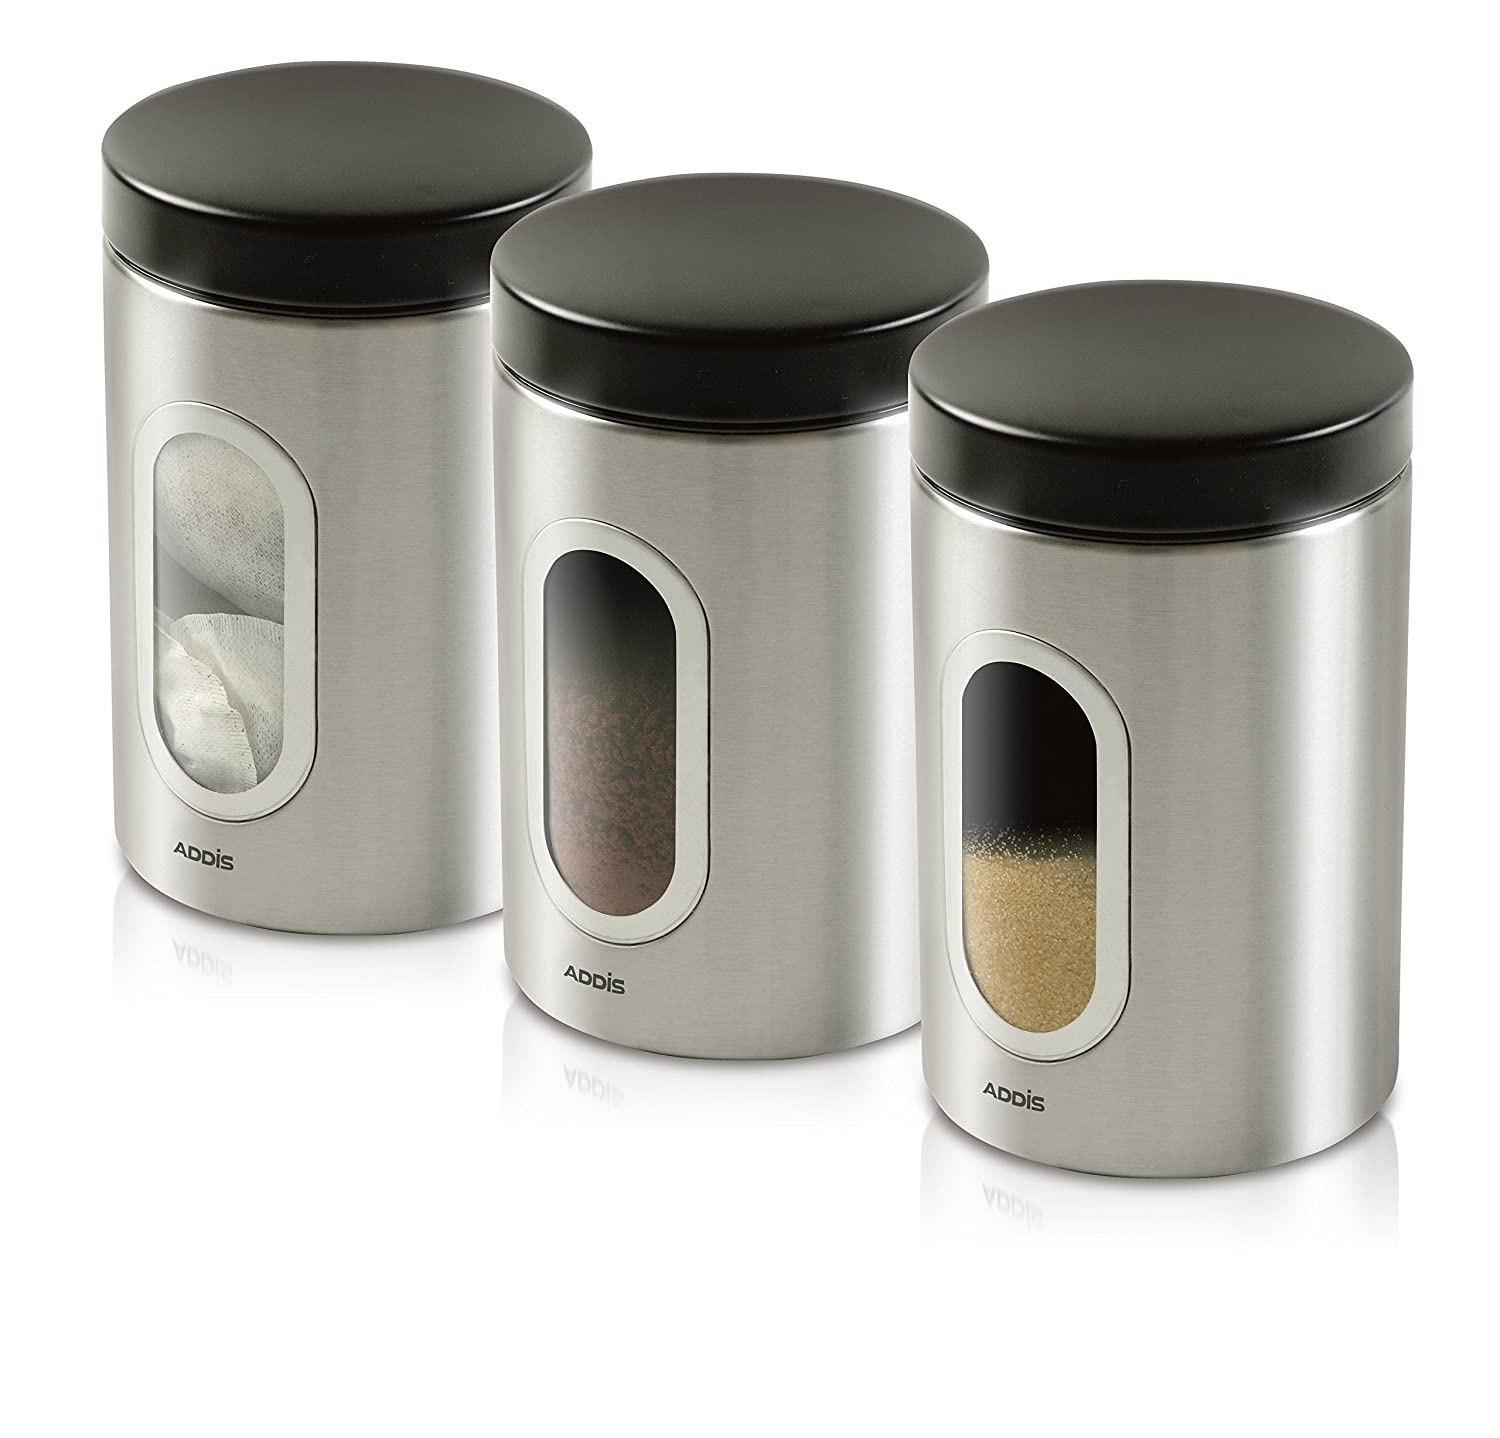 addis deluxe canisters stainless steel pack of 3 amazon co uk addis deluxe canisters stainless steel pack of 3 amazon co uk kitchen home